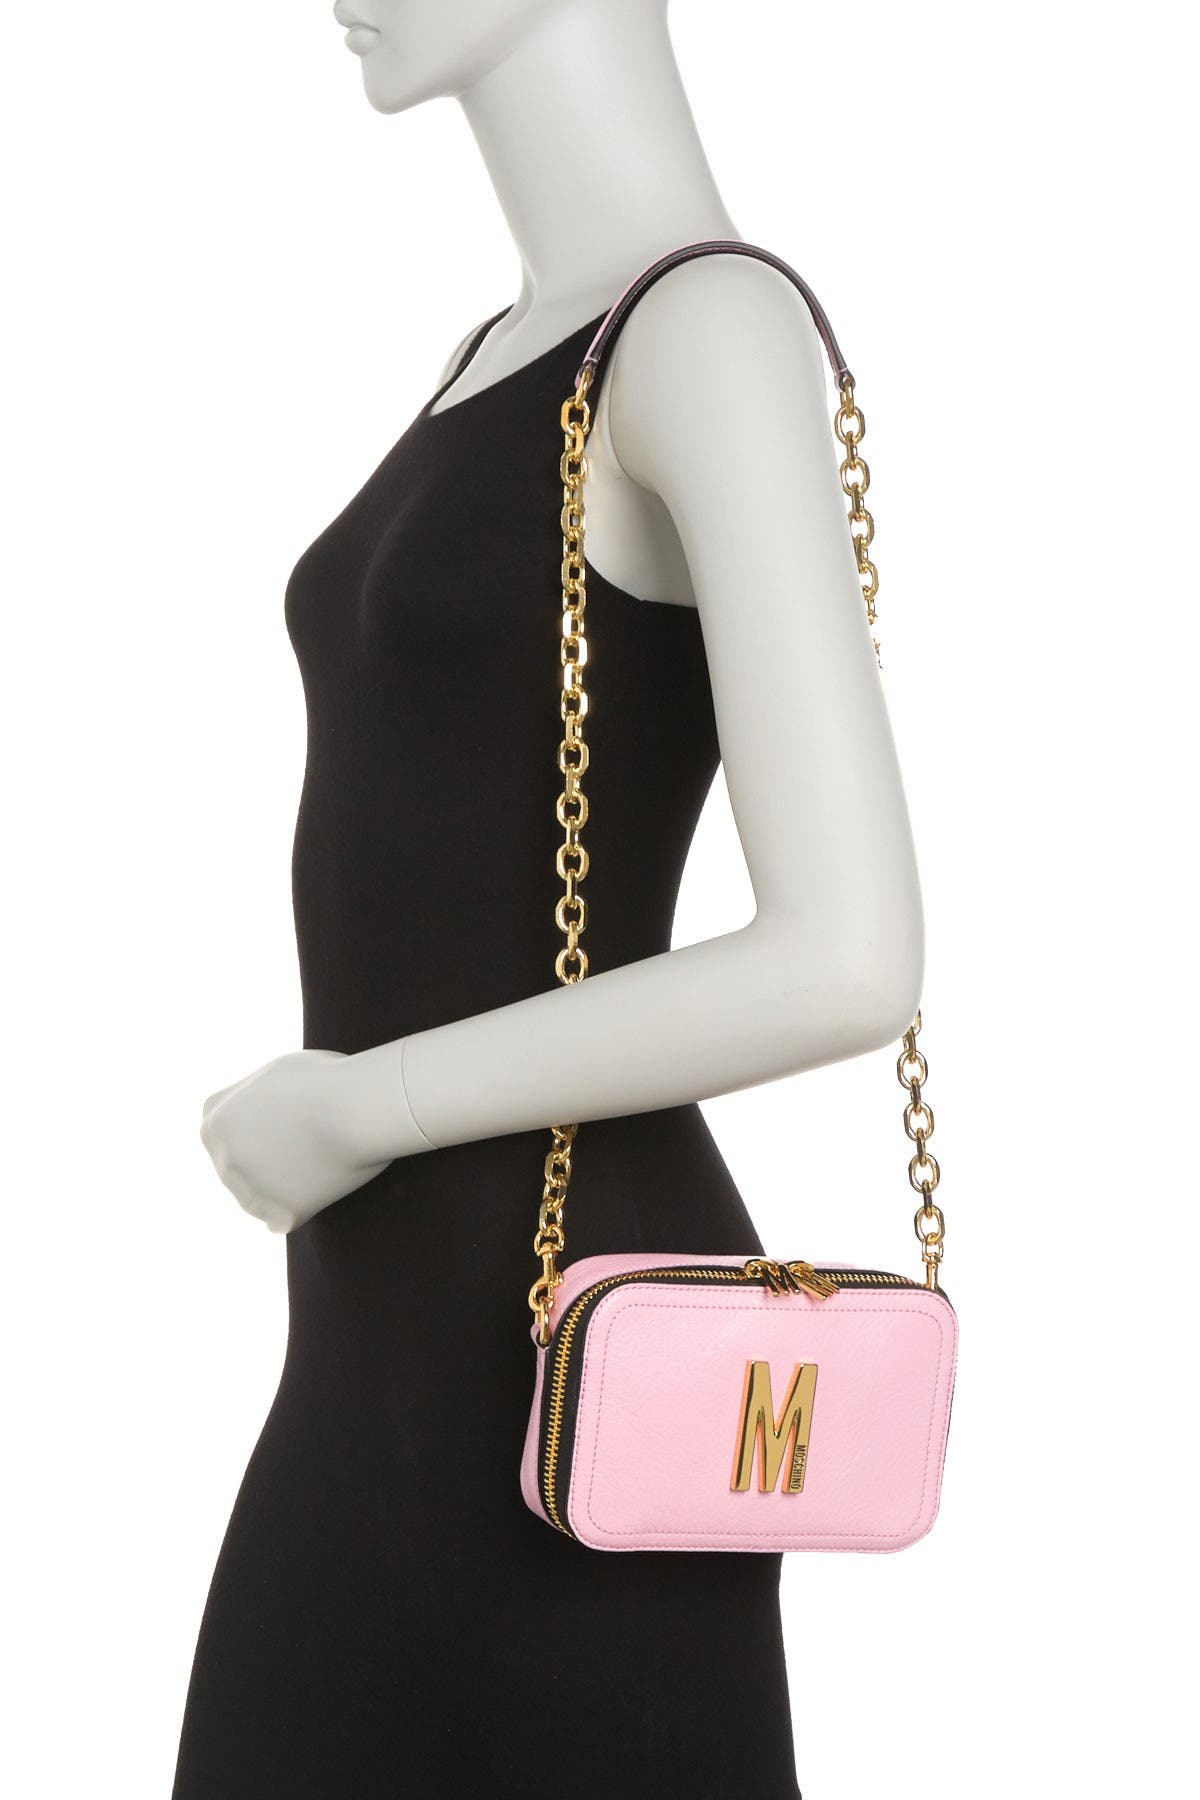 Image of MOSCHINO Convertible Leather Belt Bag